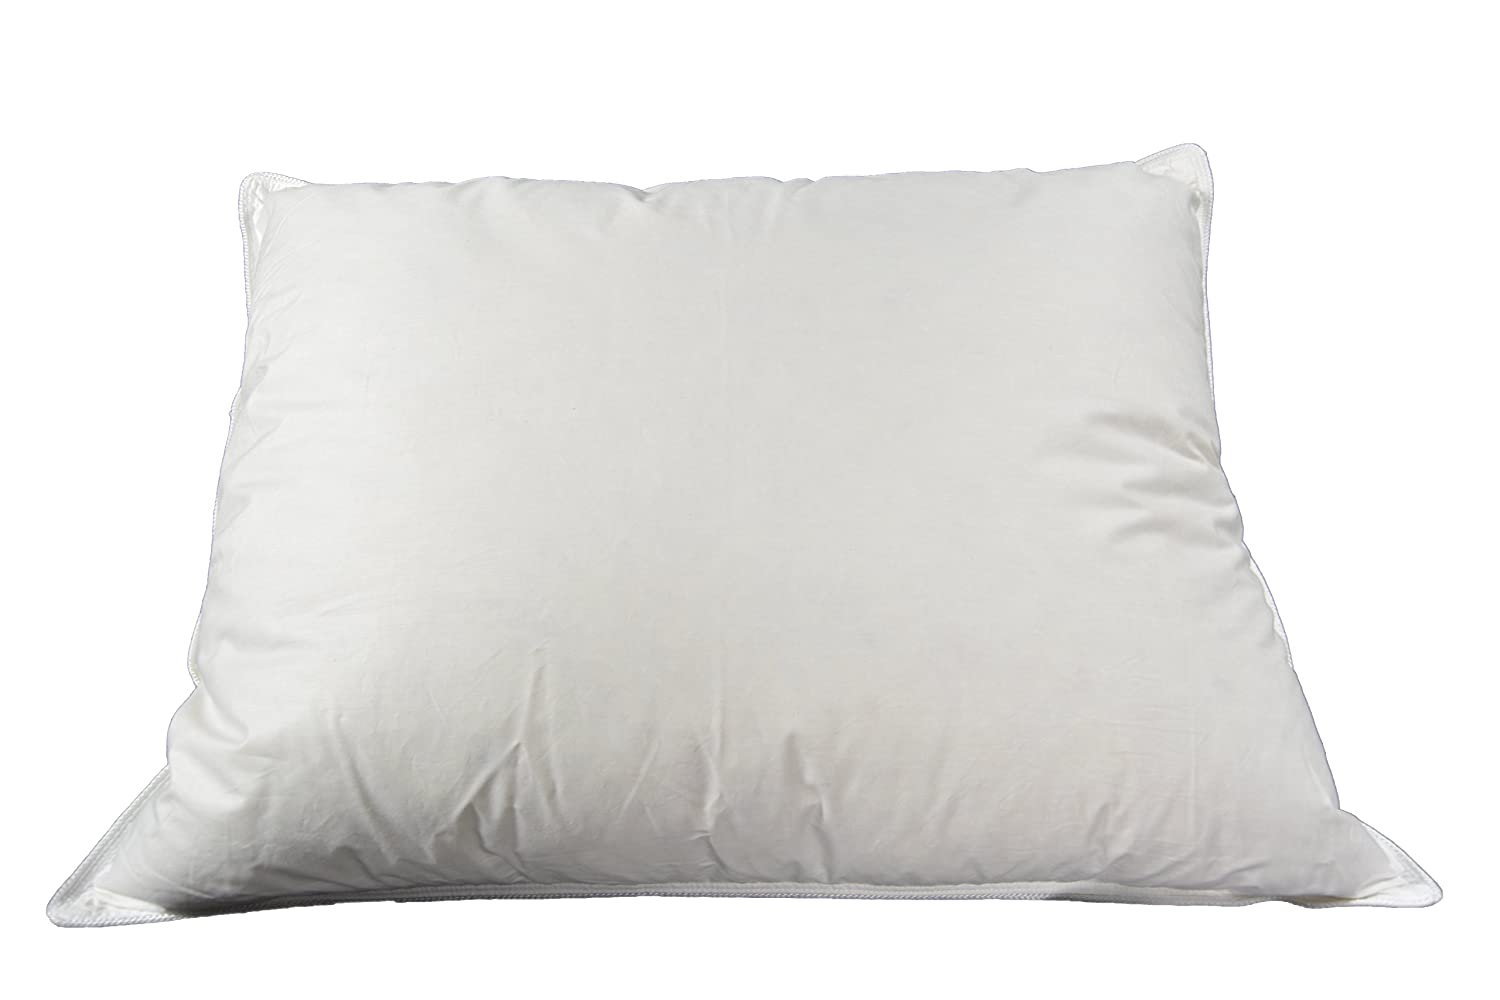 Finefeather Down and Feather Blend Sleeping Pillow - 50% White Goose Down & 50% Feather, and 100% Cotton Fabric, King Size.